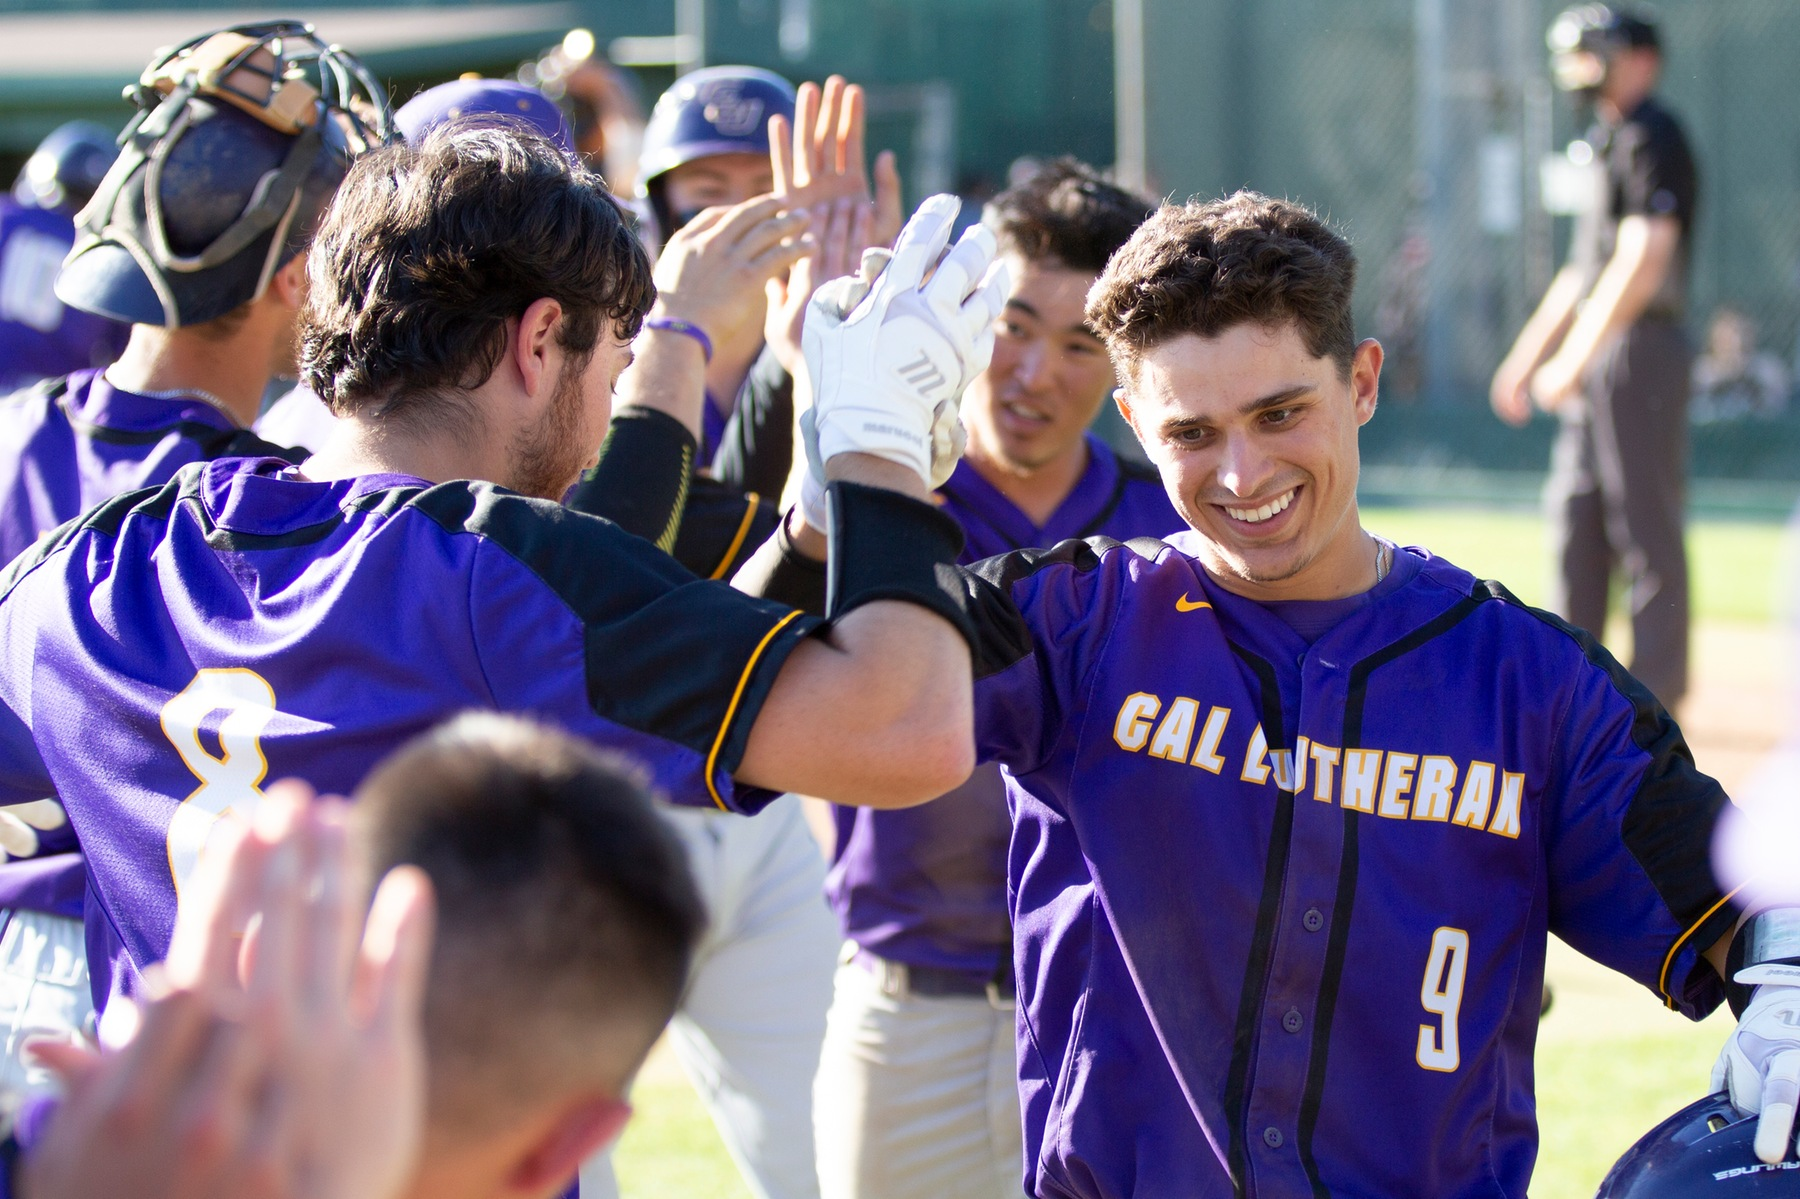 Kingsmen Offense Erupts Behind Fong's Complete Game